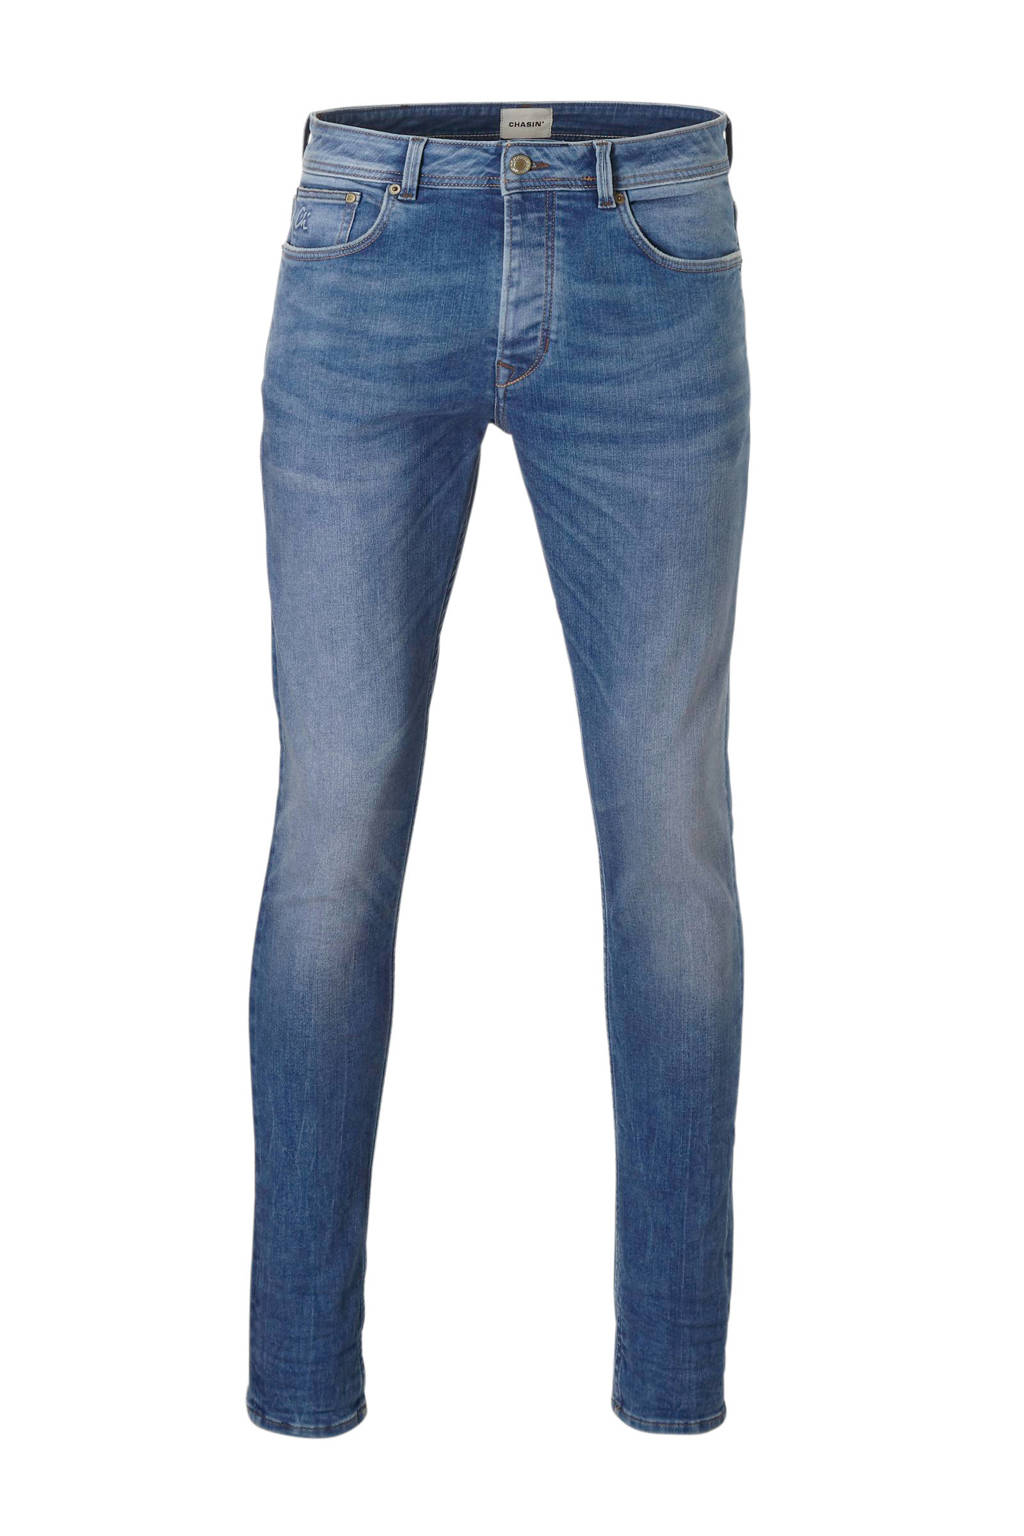 Chasin' tapered fit jeans Ross, Blauw